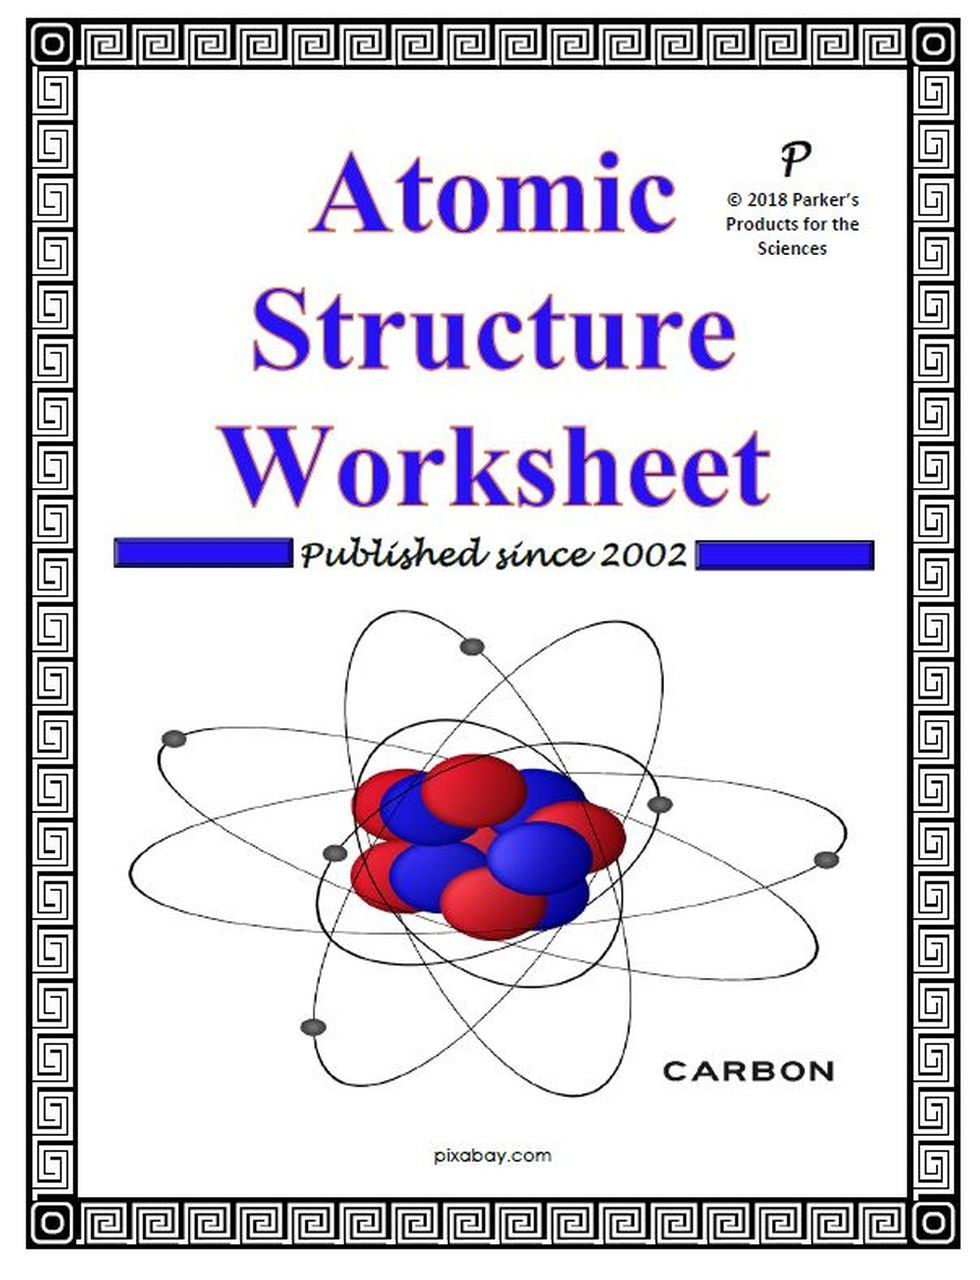 Atomic Structure Worksheet Answers Key